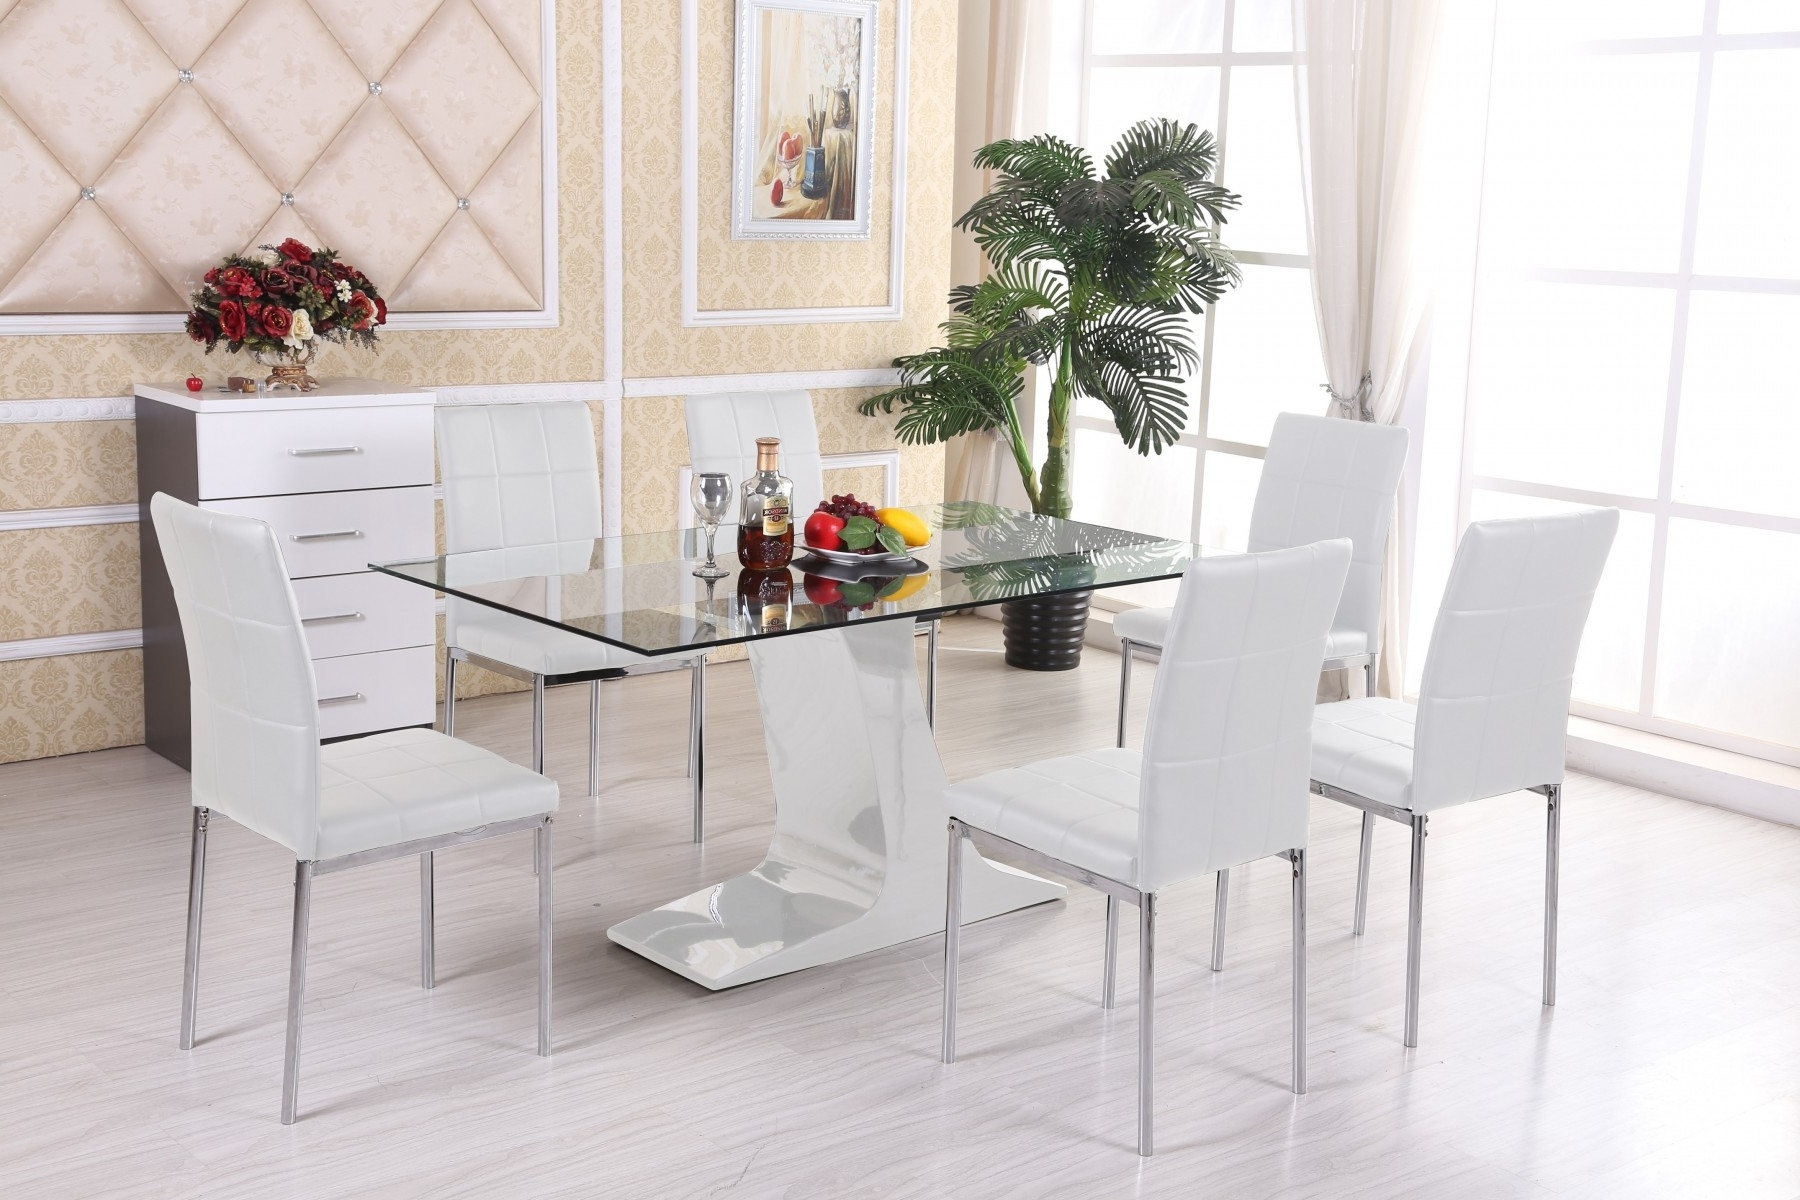 4 Optimal Choices In Glass Dining Table And Chairs – Blogbeen Throughout Trendy Glass Dining Tables And 6 Chairs (View 4 of 25)